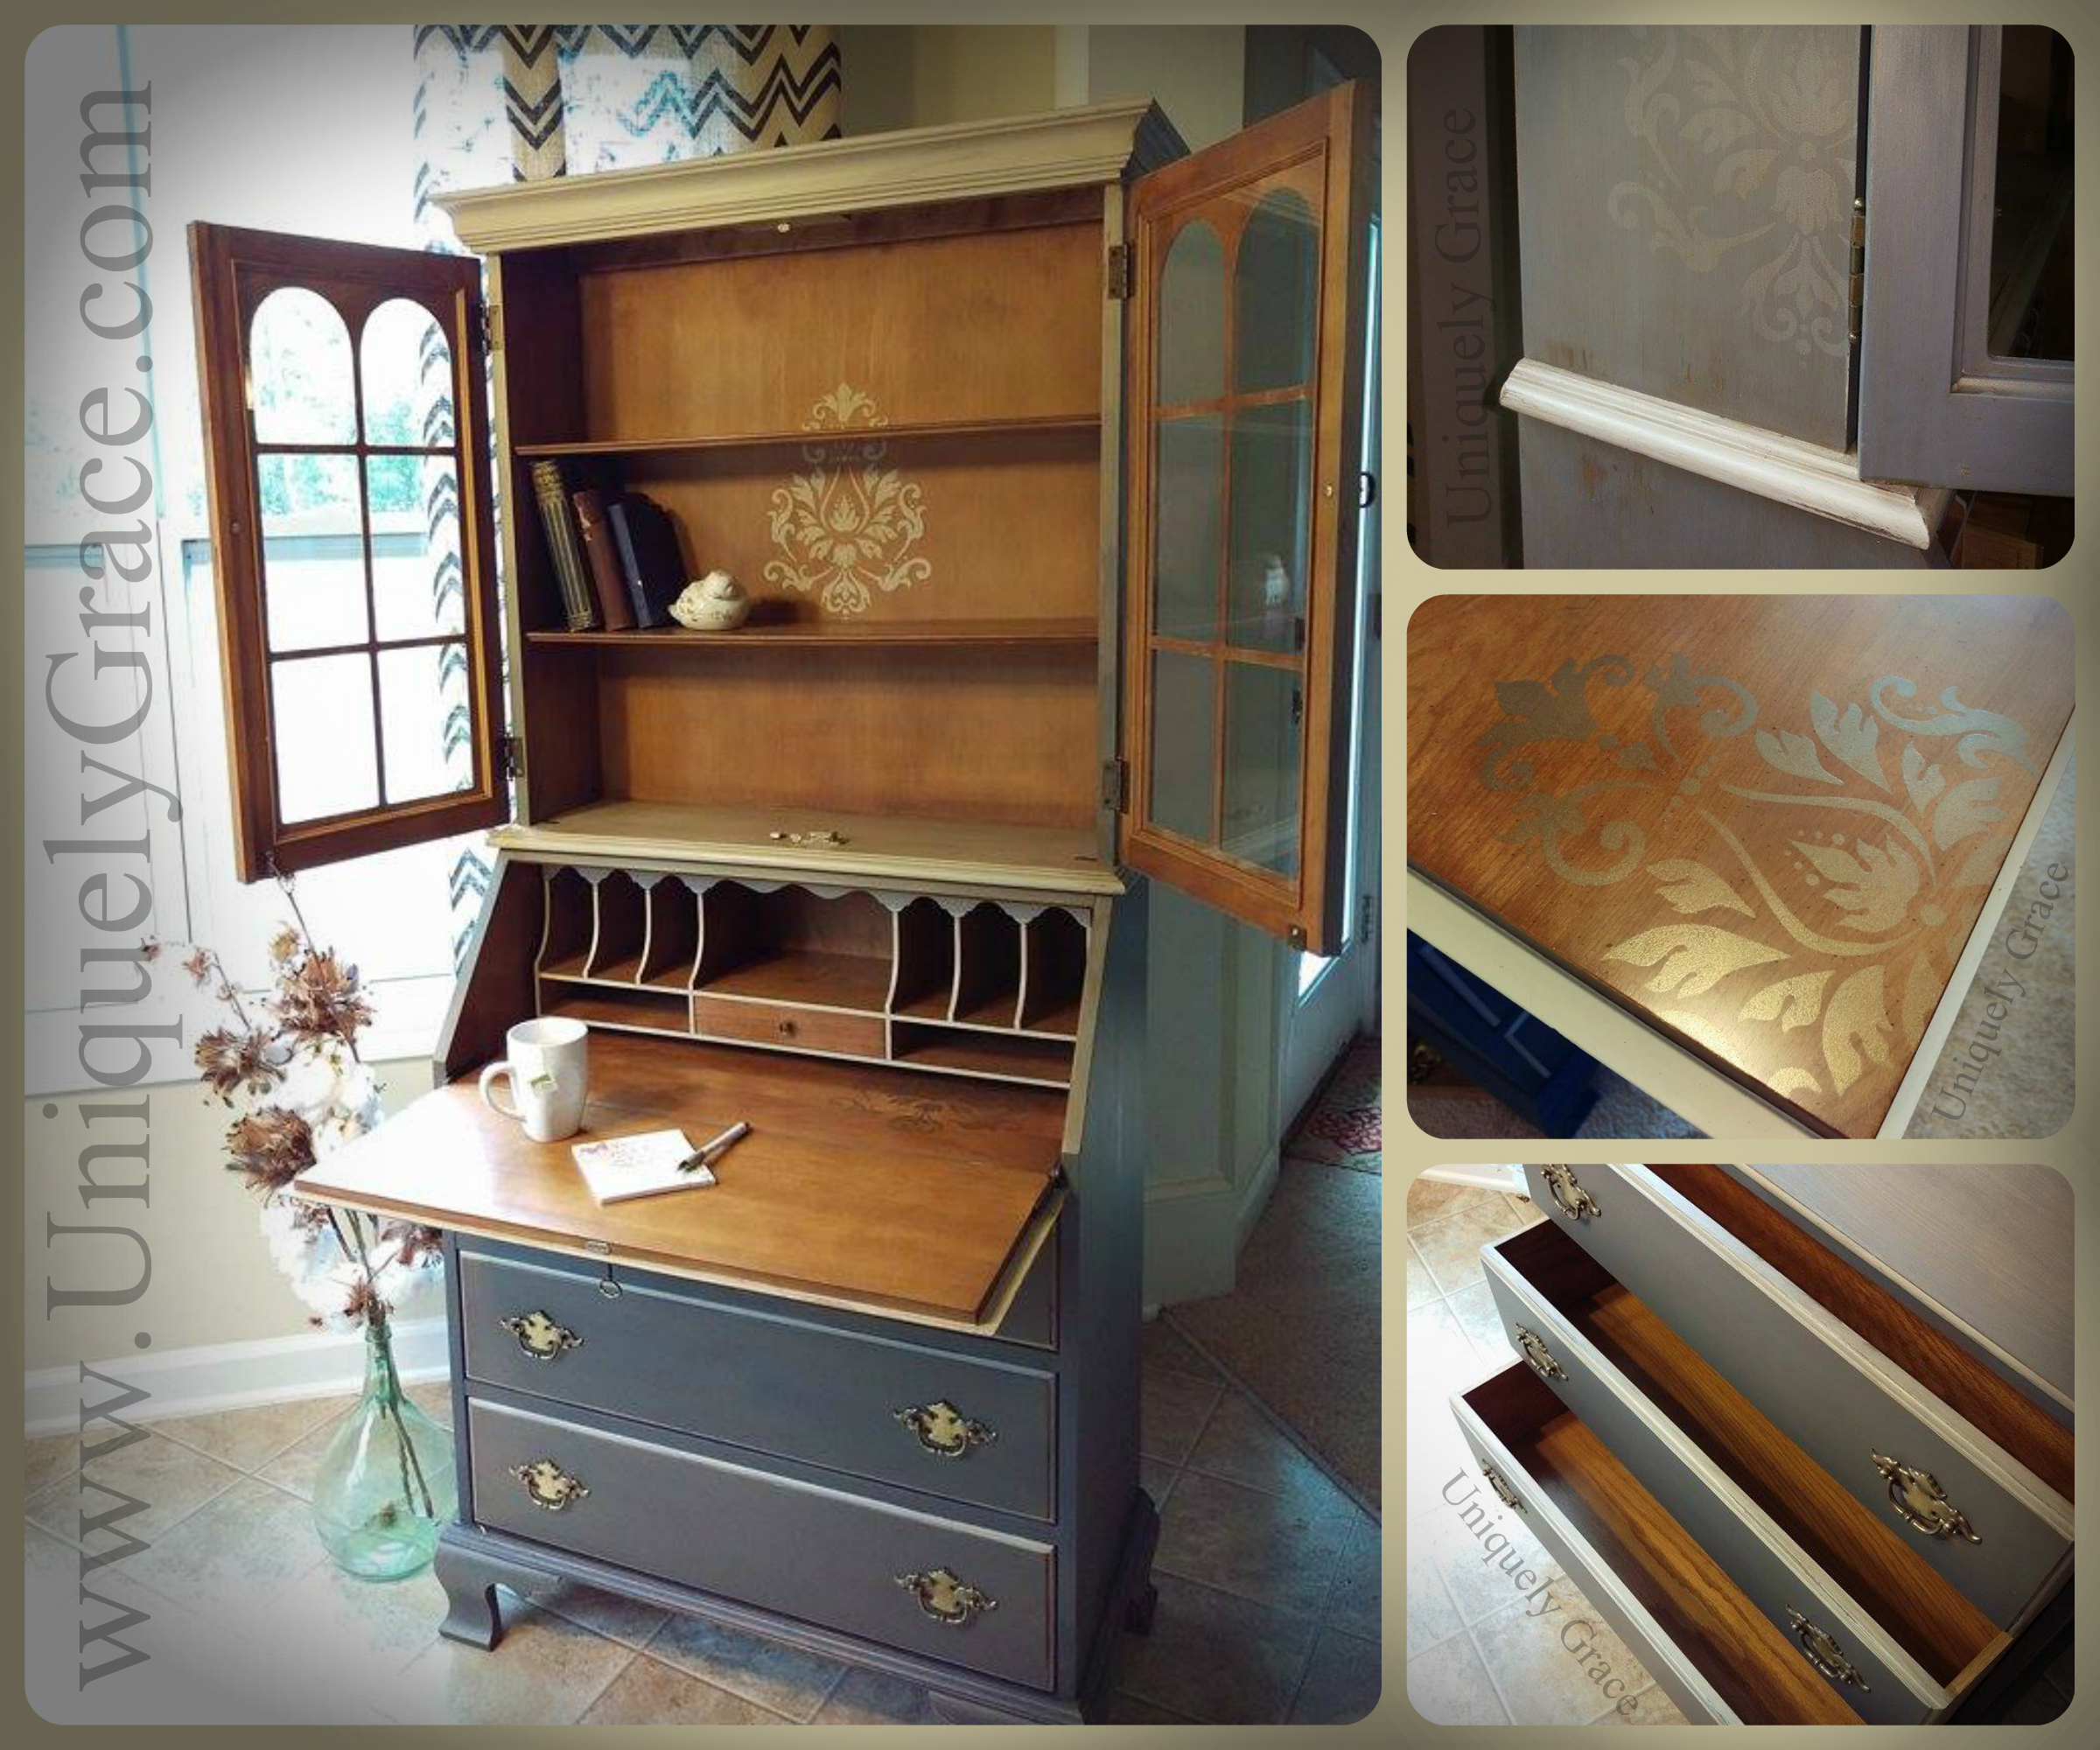 Anastasia Shades grey cali Taupe licorice old gold shimmer vax shabby chalk paints jasper cabinets uniquely grace lauer